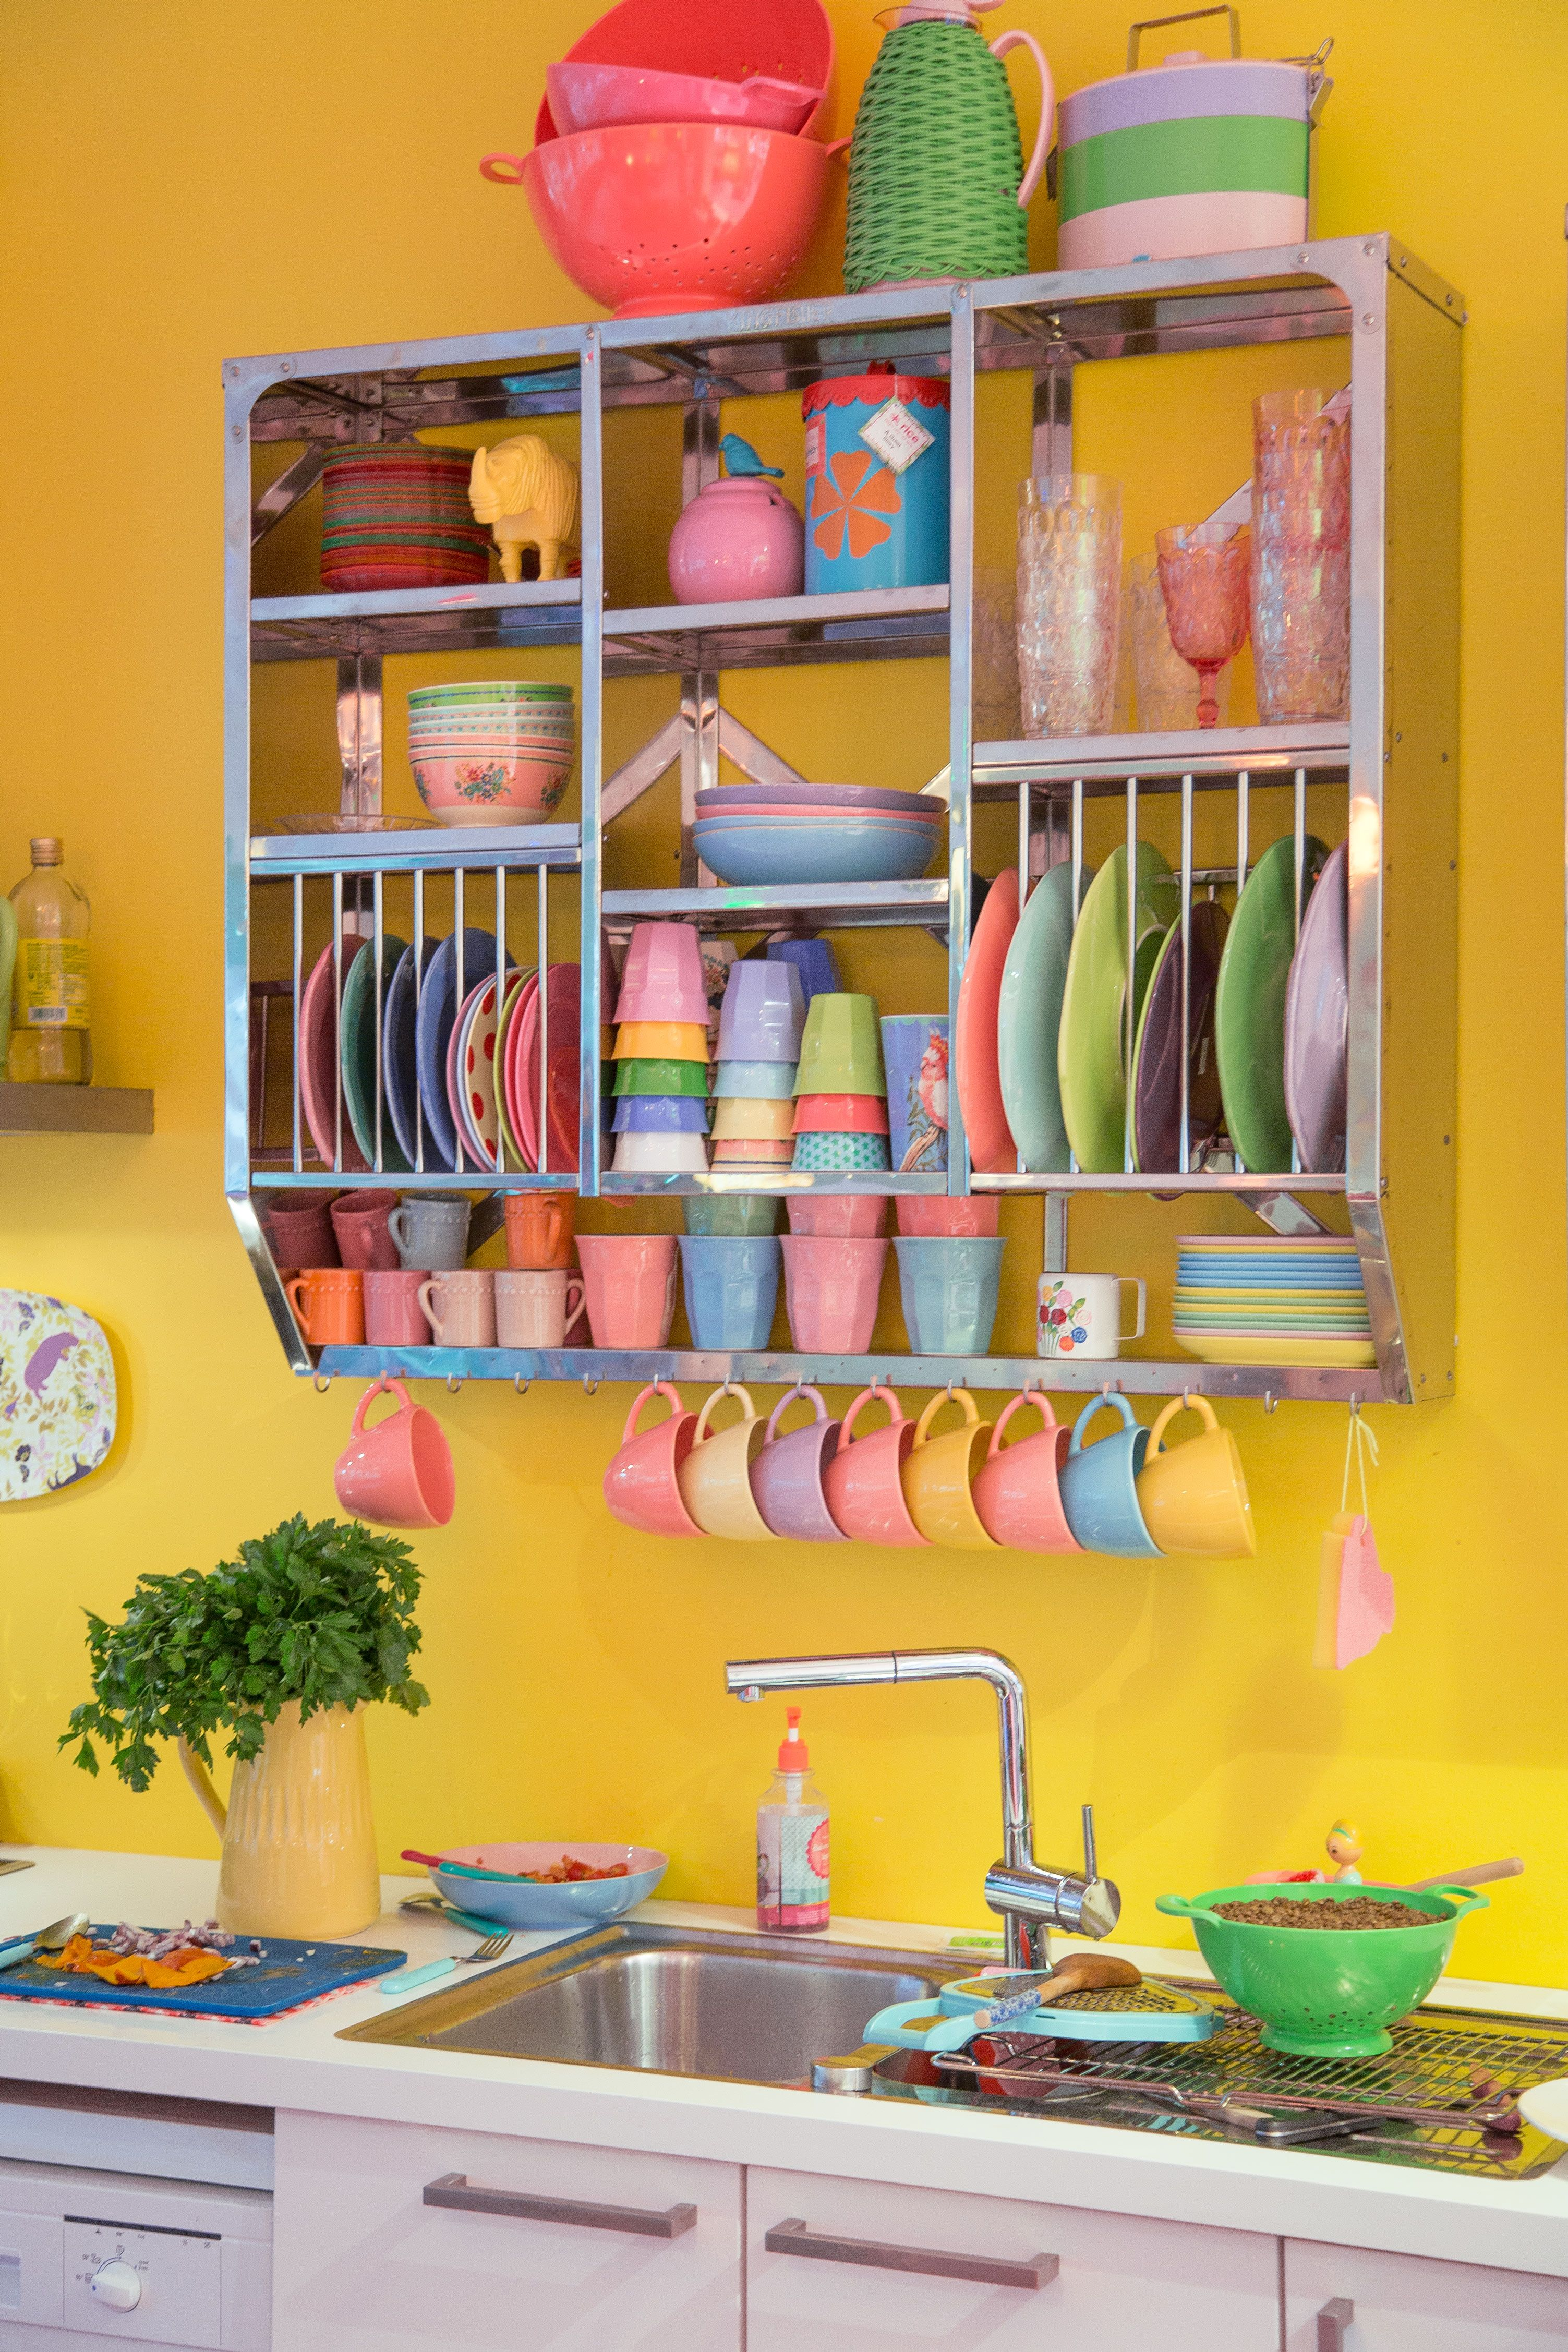 Happiest kitchen in the world! Colorful Kitchen in Rice Showroom in ...